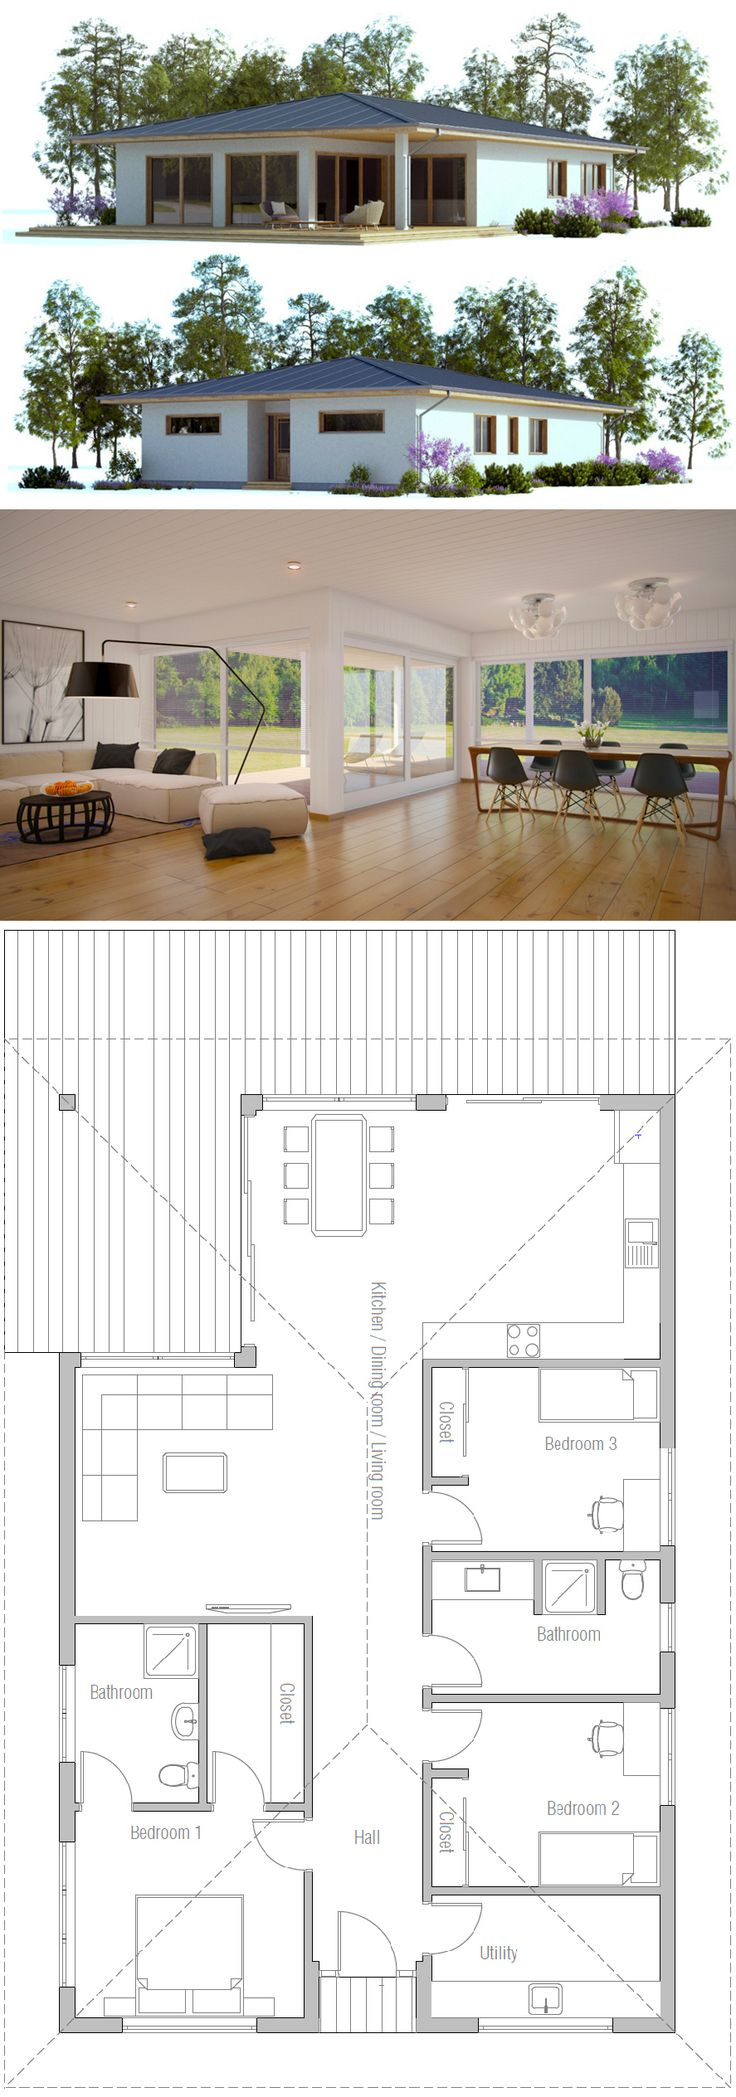 ^ 1000+ images about Small House Plans on Pinterest House plans ...